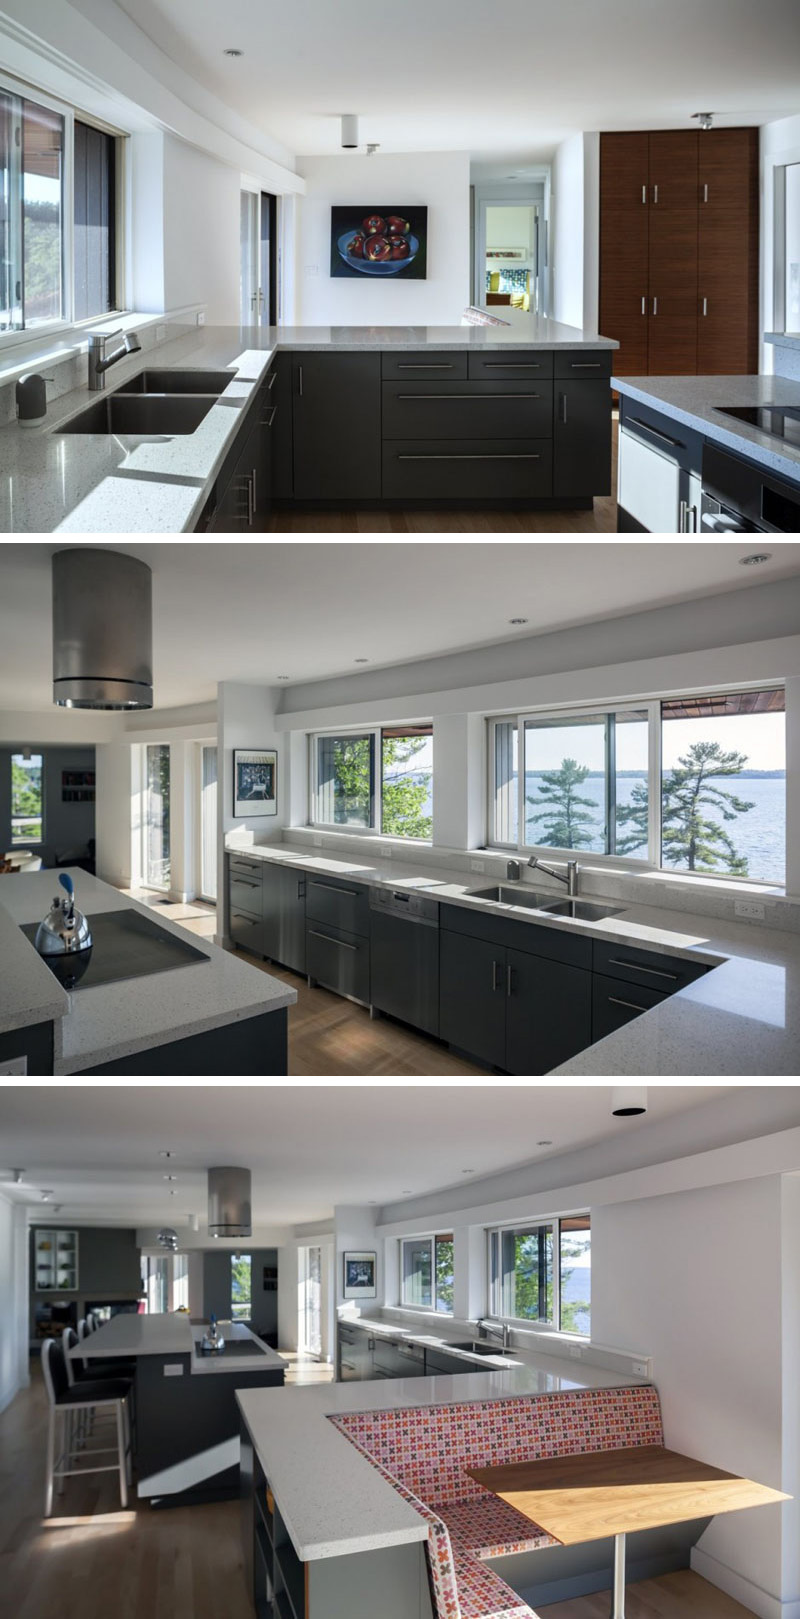 In this modern kitchen, grey cabinetry and stone countertops provide plenty of storage and work space. Built-in at the end of the kitchen counter is seating with a retro upholstered pattern, and a small wood table has been added to provide more options for dining.